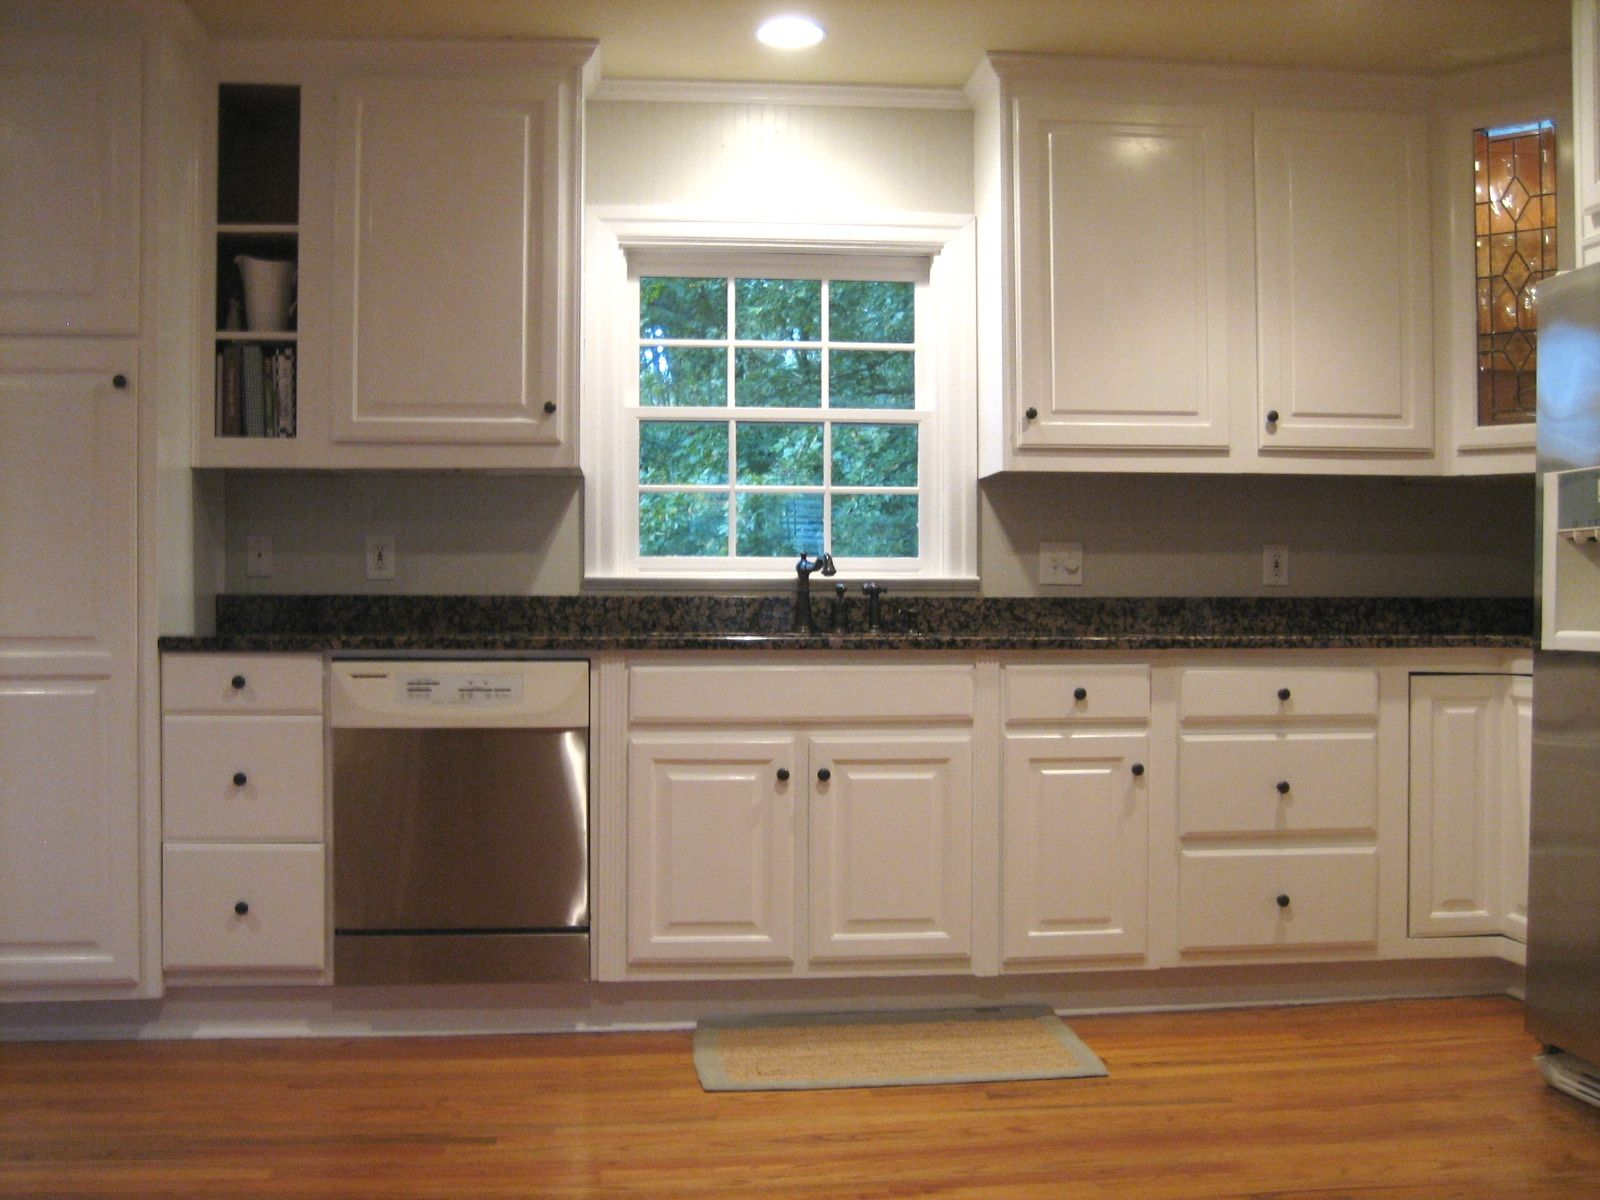 marvelous gray wall painted with white cabinet remodelling to gray kitchen cabinets as well as black countertops with wooden flooring designs in white